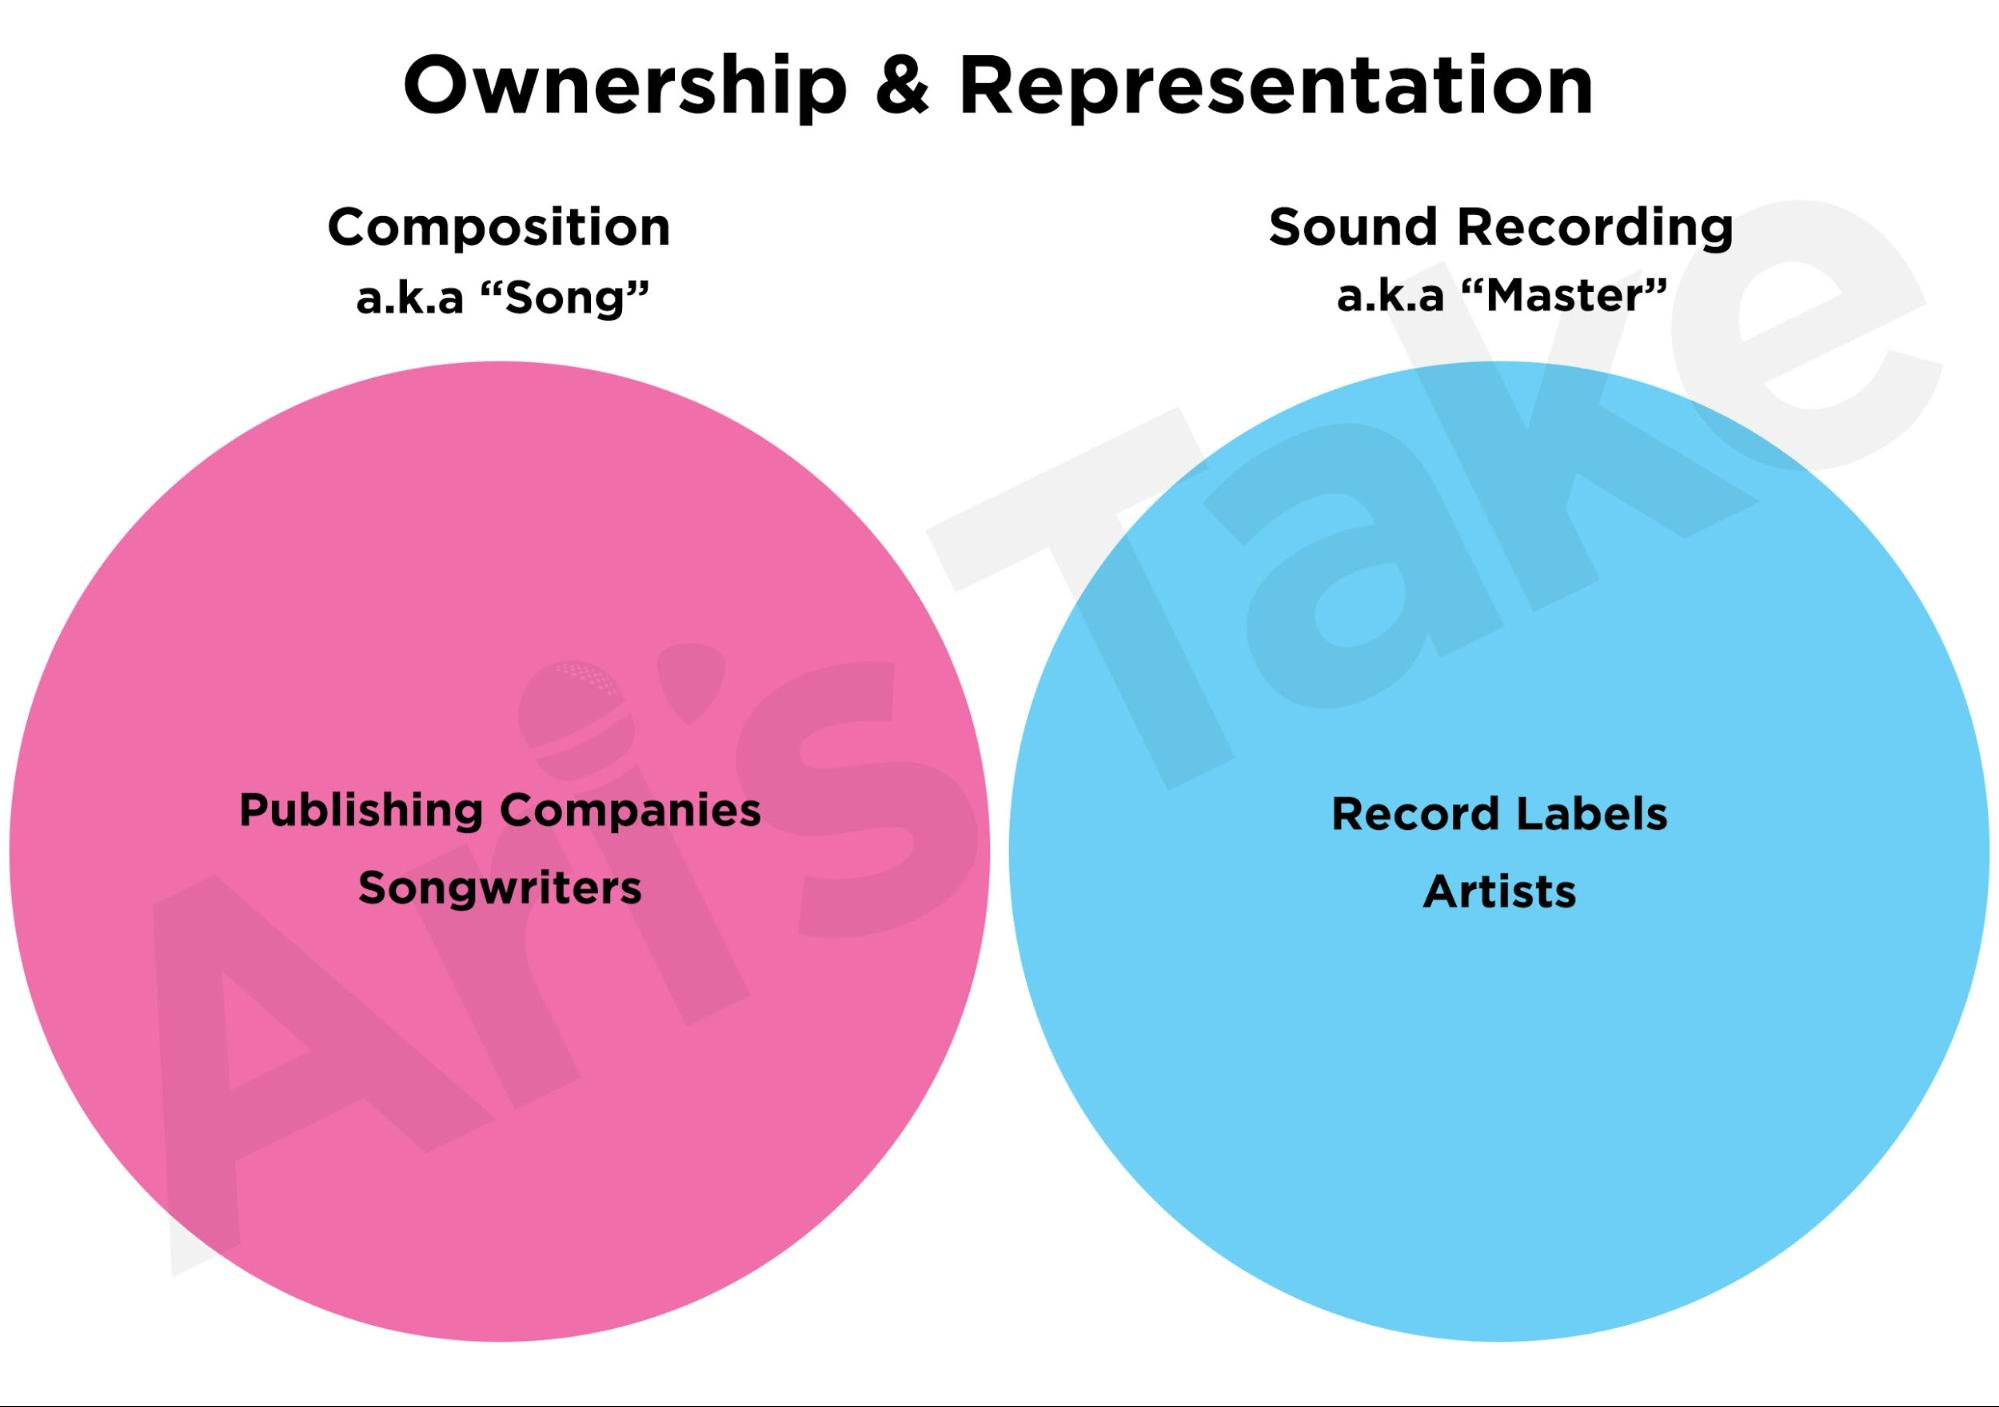 Ownership and representation for composition and sound recordings